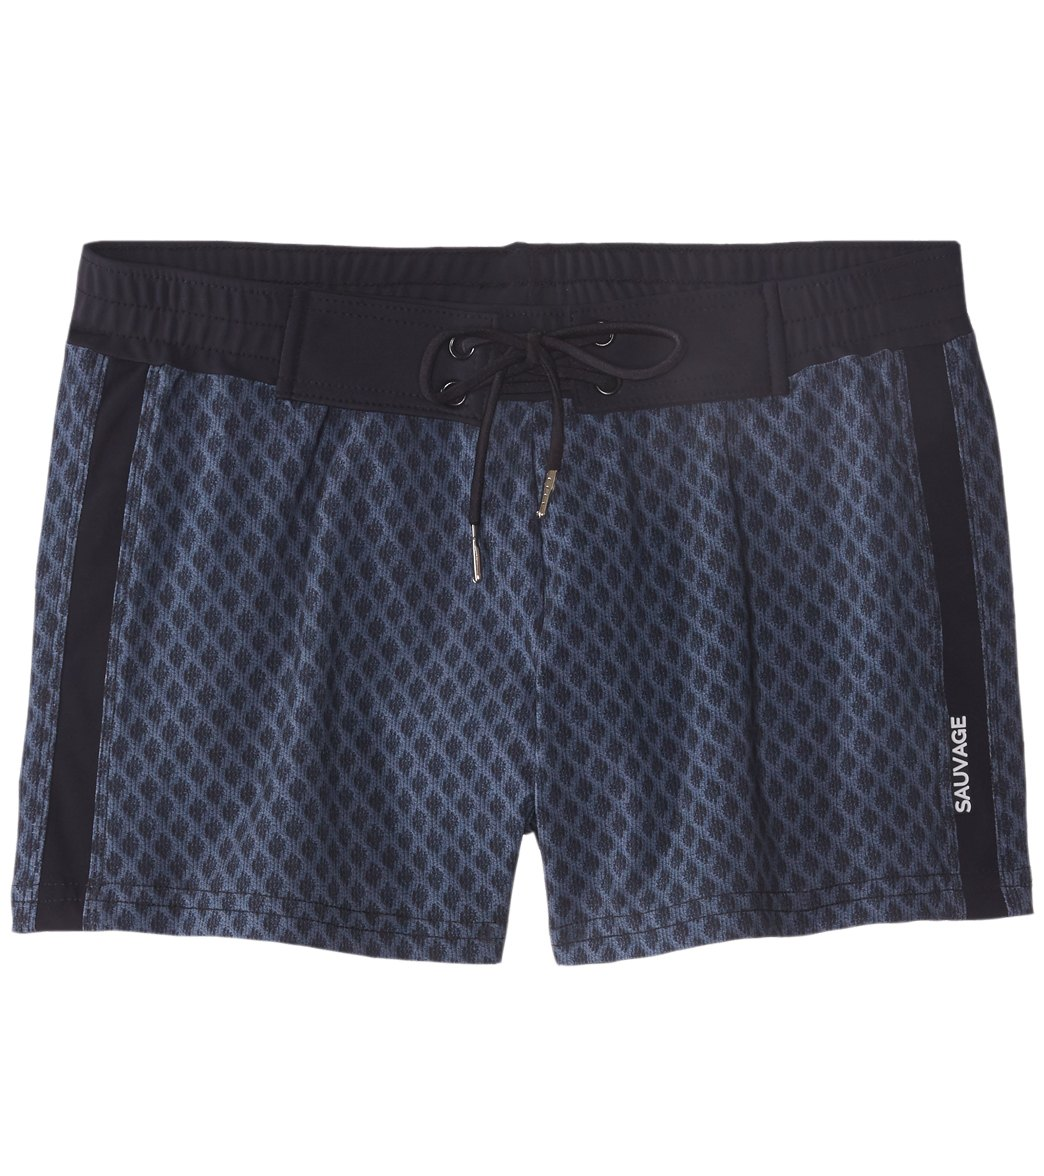 4f94b04d85ca9 Sauvage Diamond Swim Trunk at SwimOutlet.com - Free Shipping